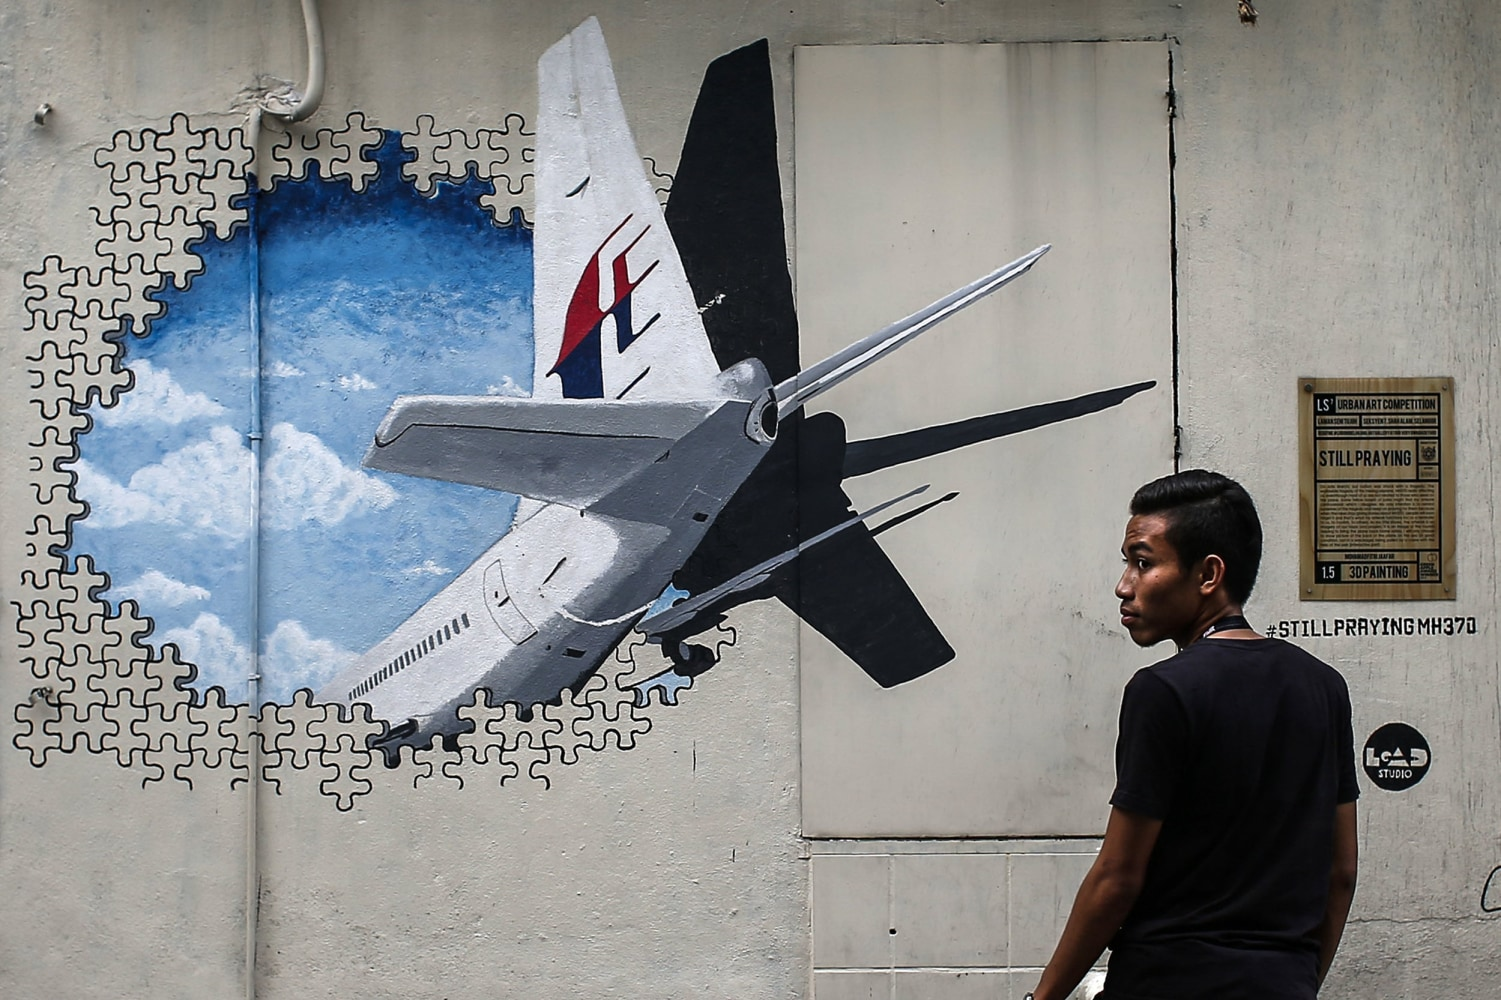 Malaysia Airlines Flight MH370 mystery 'almost inconceivable'